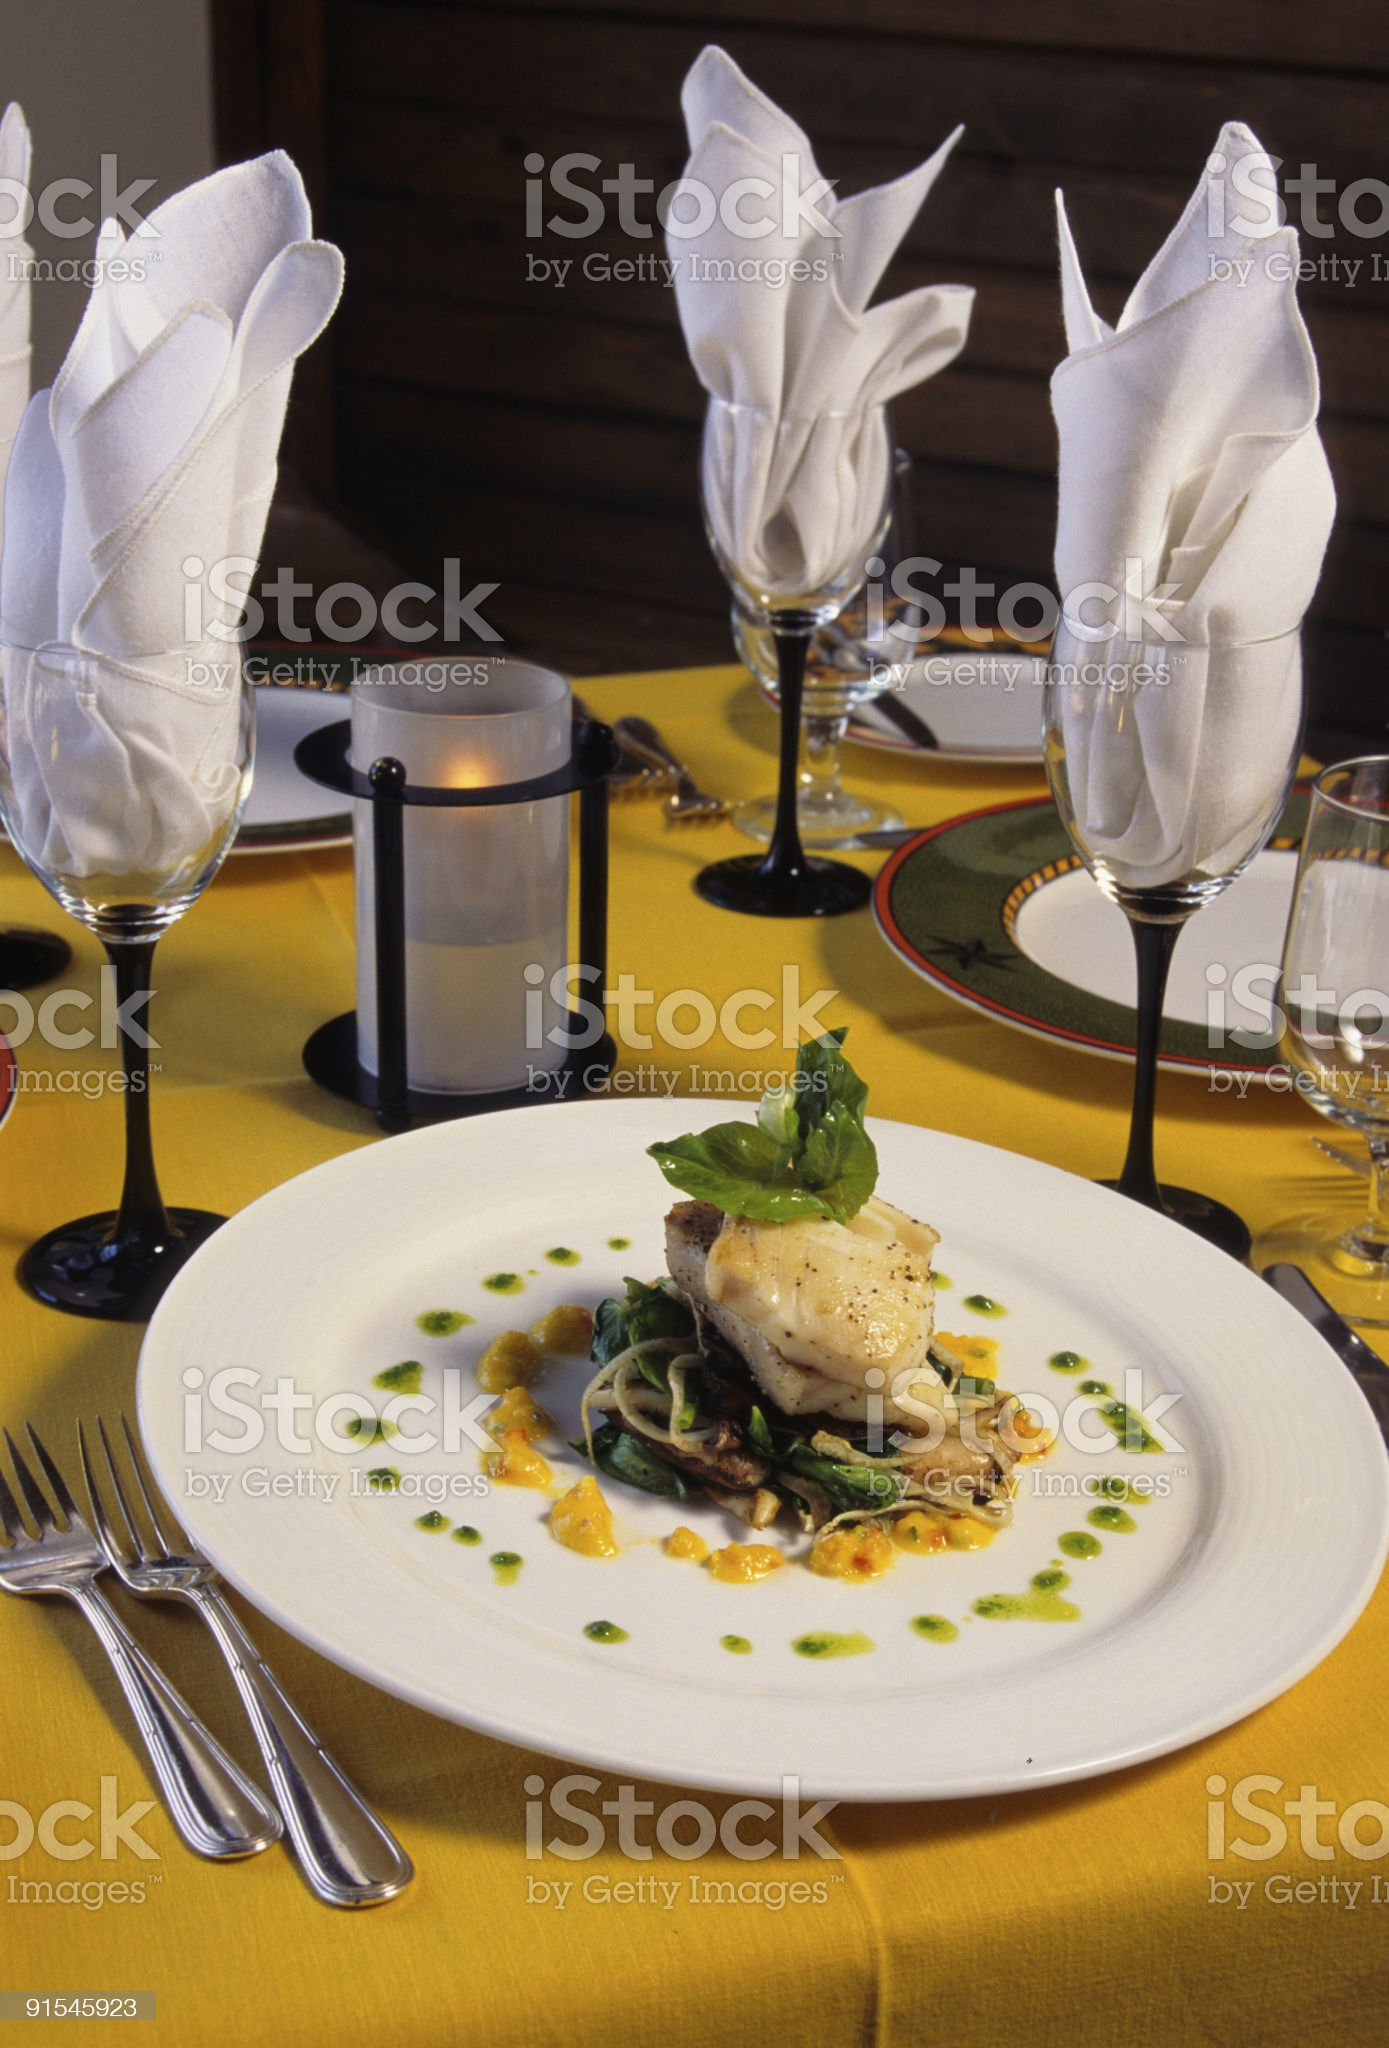 Halibut Fish Entree Plated Fine Dining Dinner Setup in Restaurant royalty-free stock photo